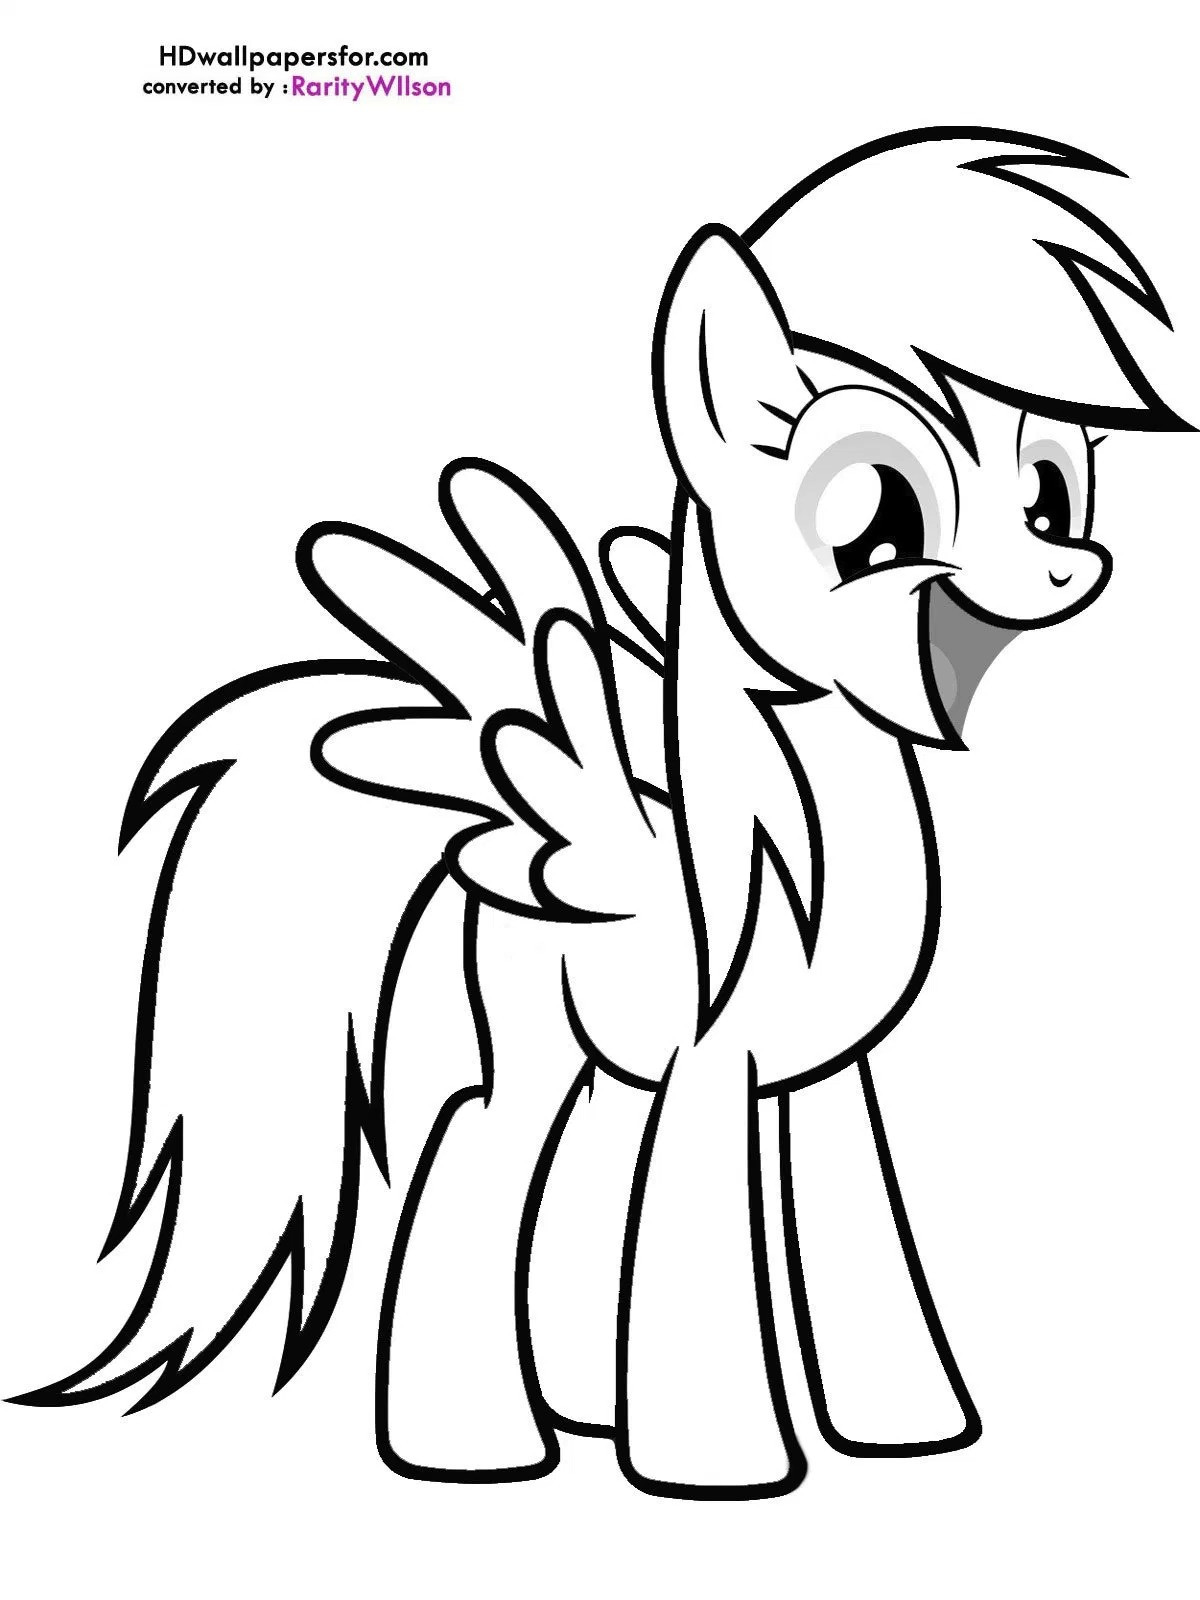 Pony clipart colouring page. My little friendship is